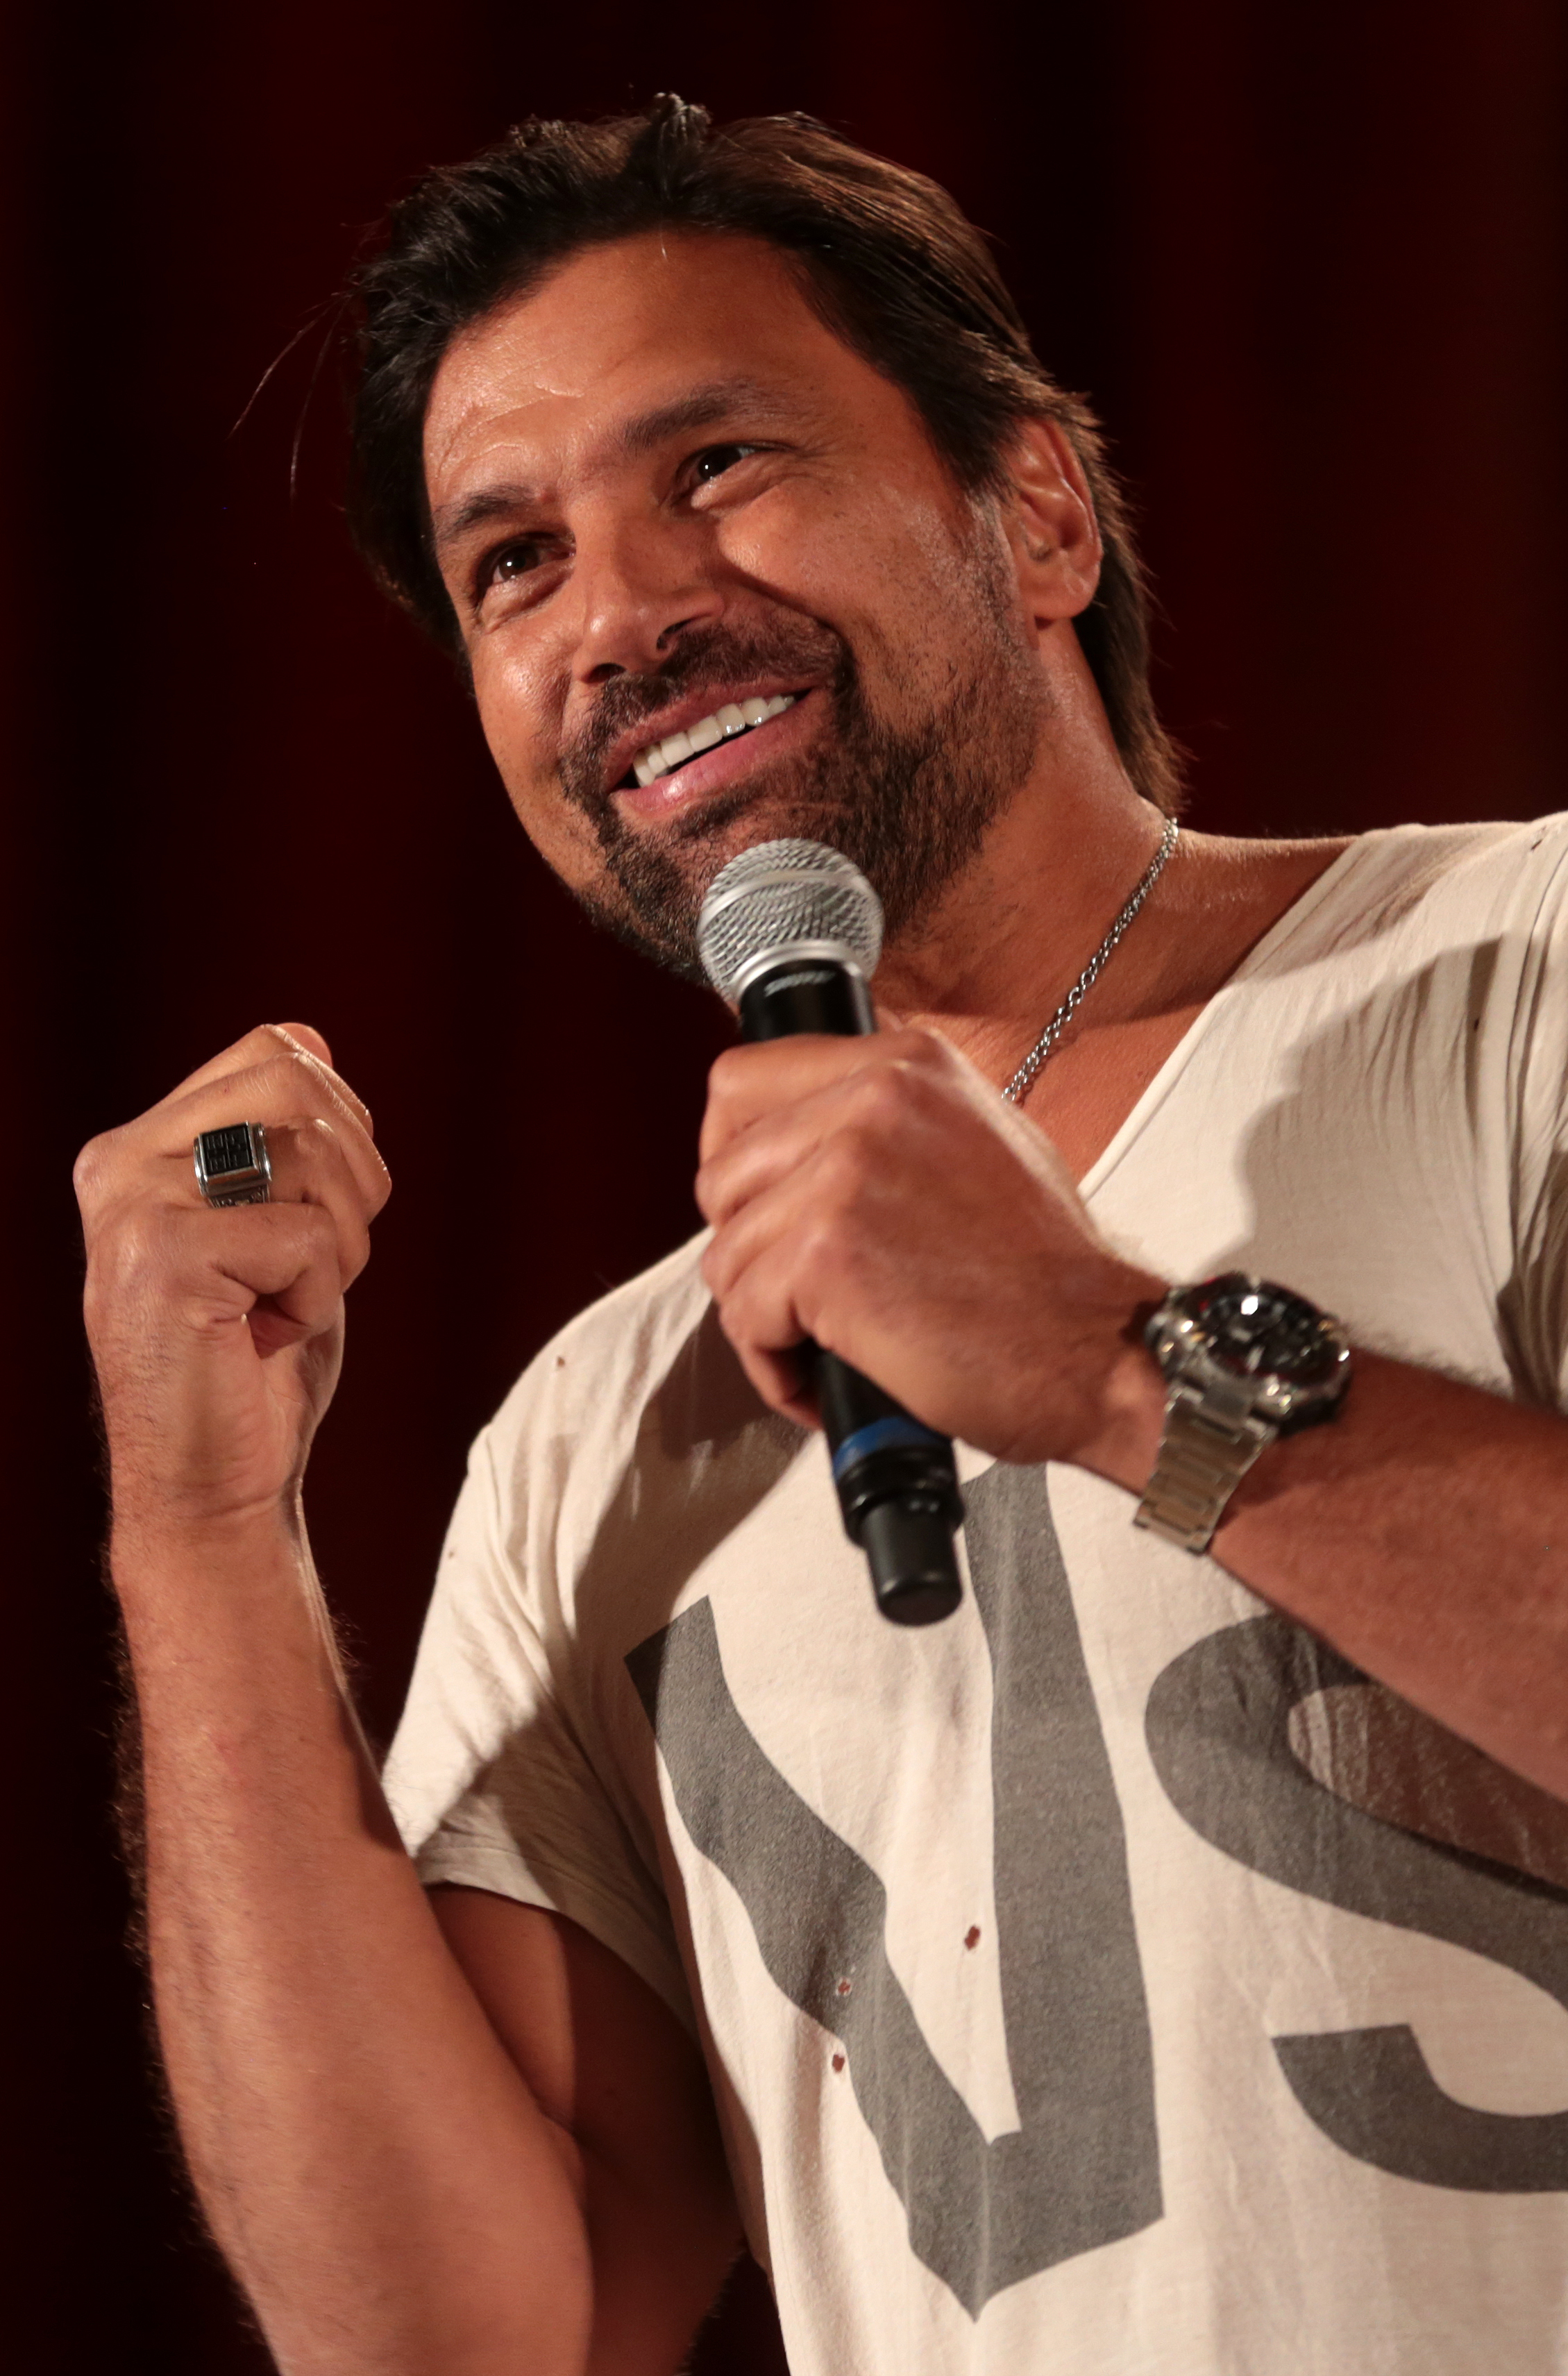 The 49-year old son of father (?) and mother(?) Manu Bennett in 2018 photo. Manu Bennett earned a  million dollar salary - leaving the net worth at 1.5 million in 2018